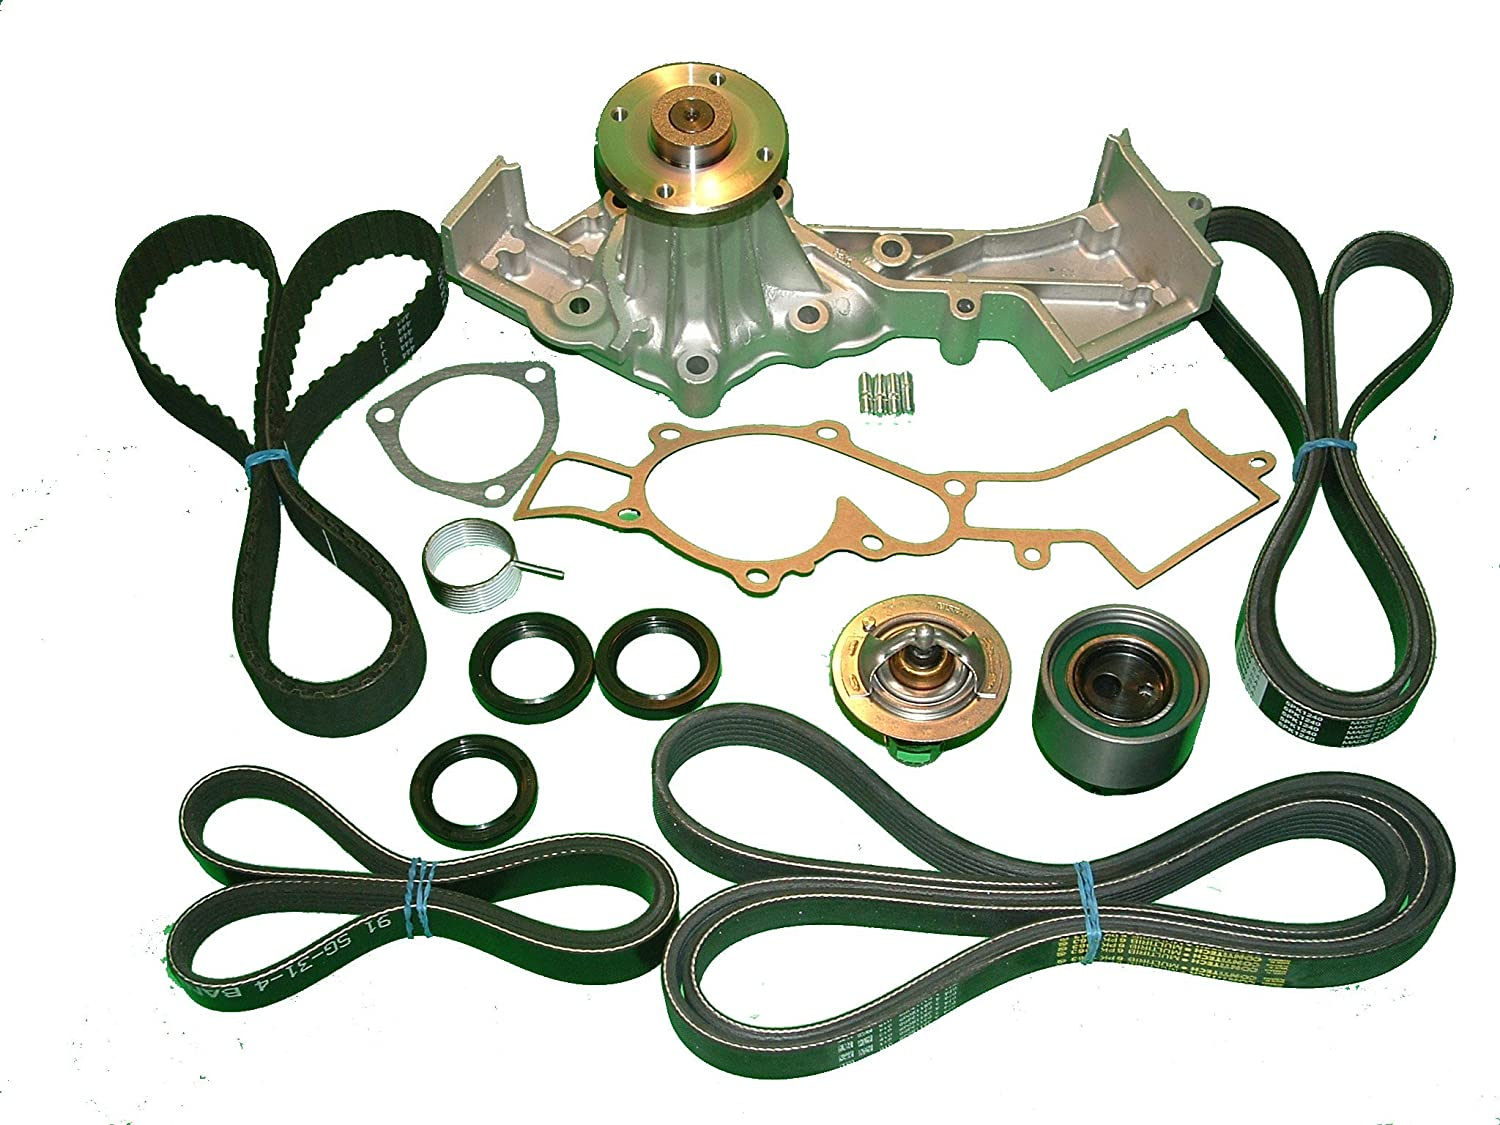 TBK Timing Belt Kit unisex Replacement Very popular! for 1999 Frontier Nissan 2004 to